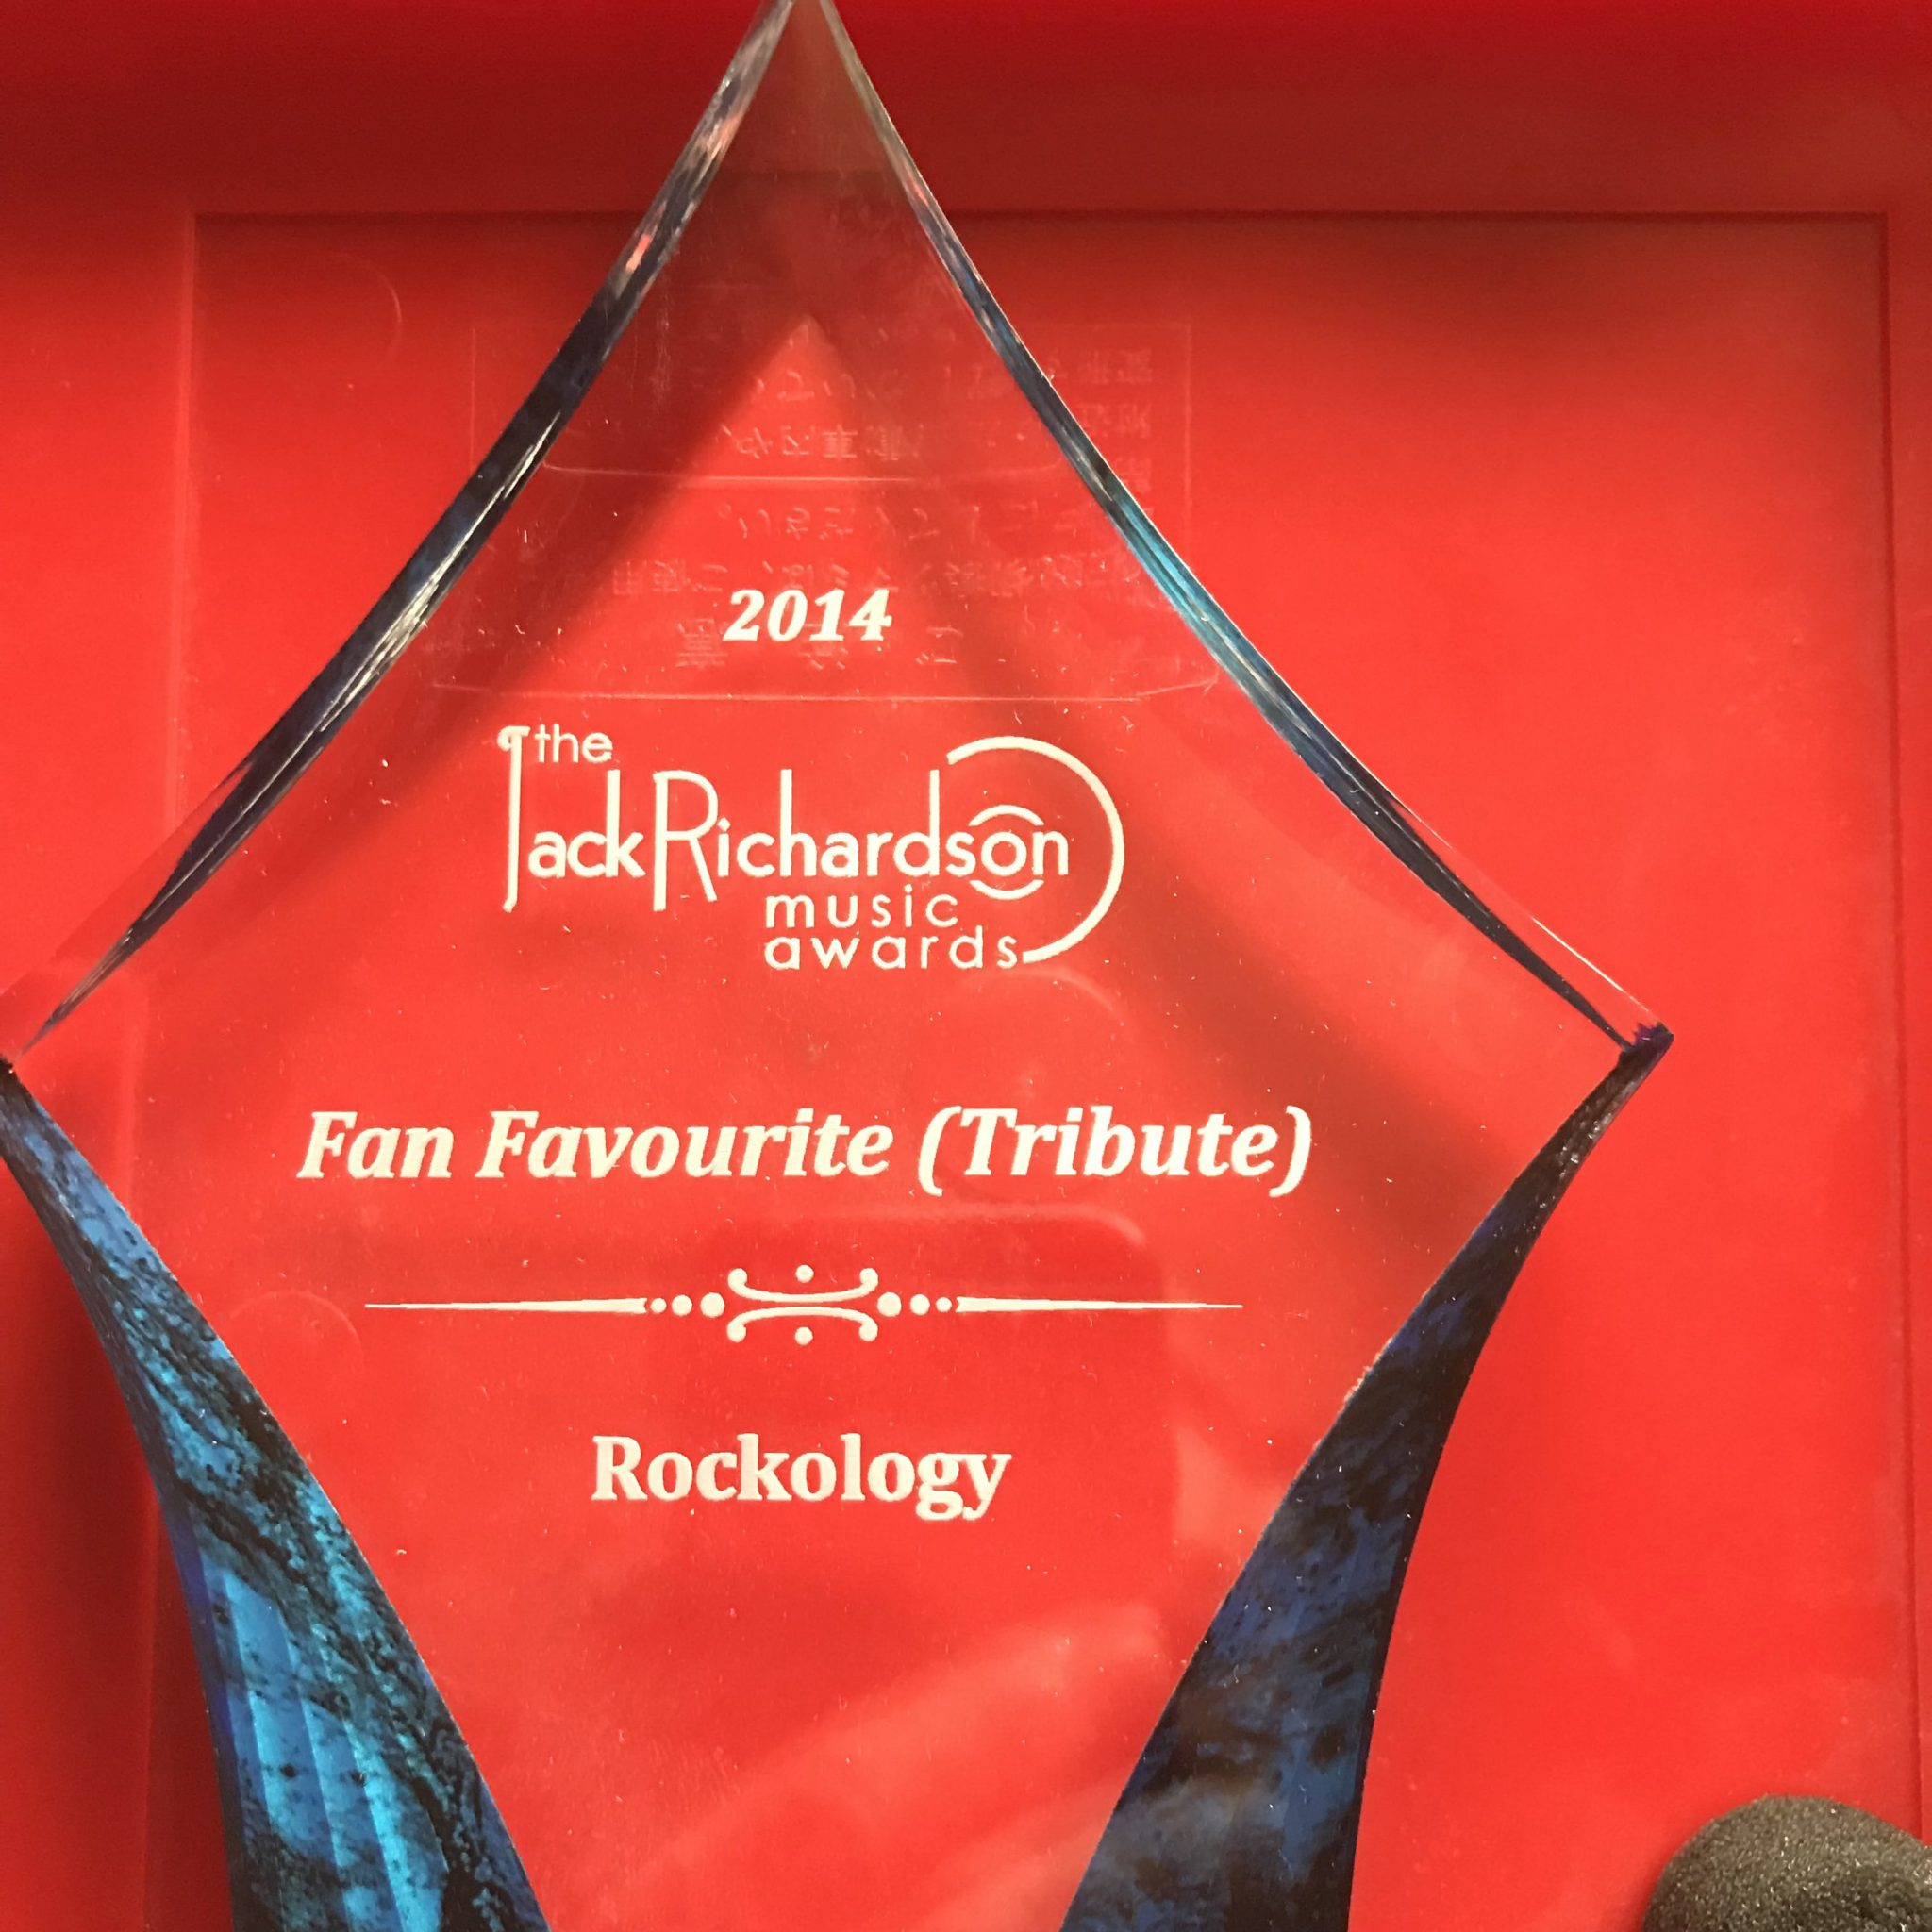 This trophy needed some help to find its way to Scott Szeryk, commander of the Rockology project.